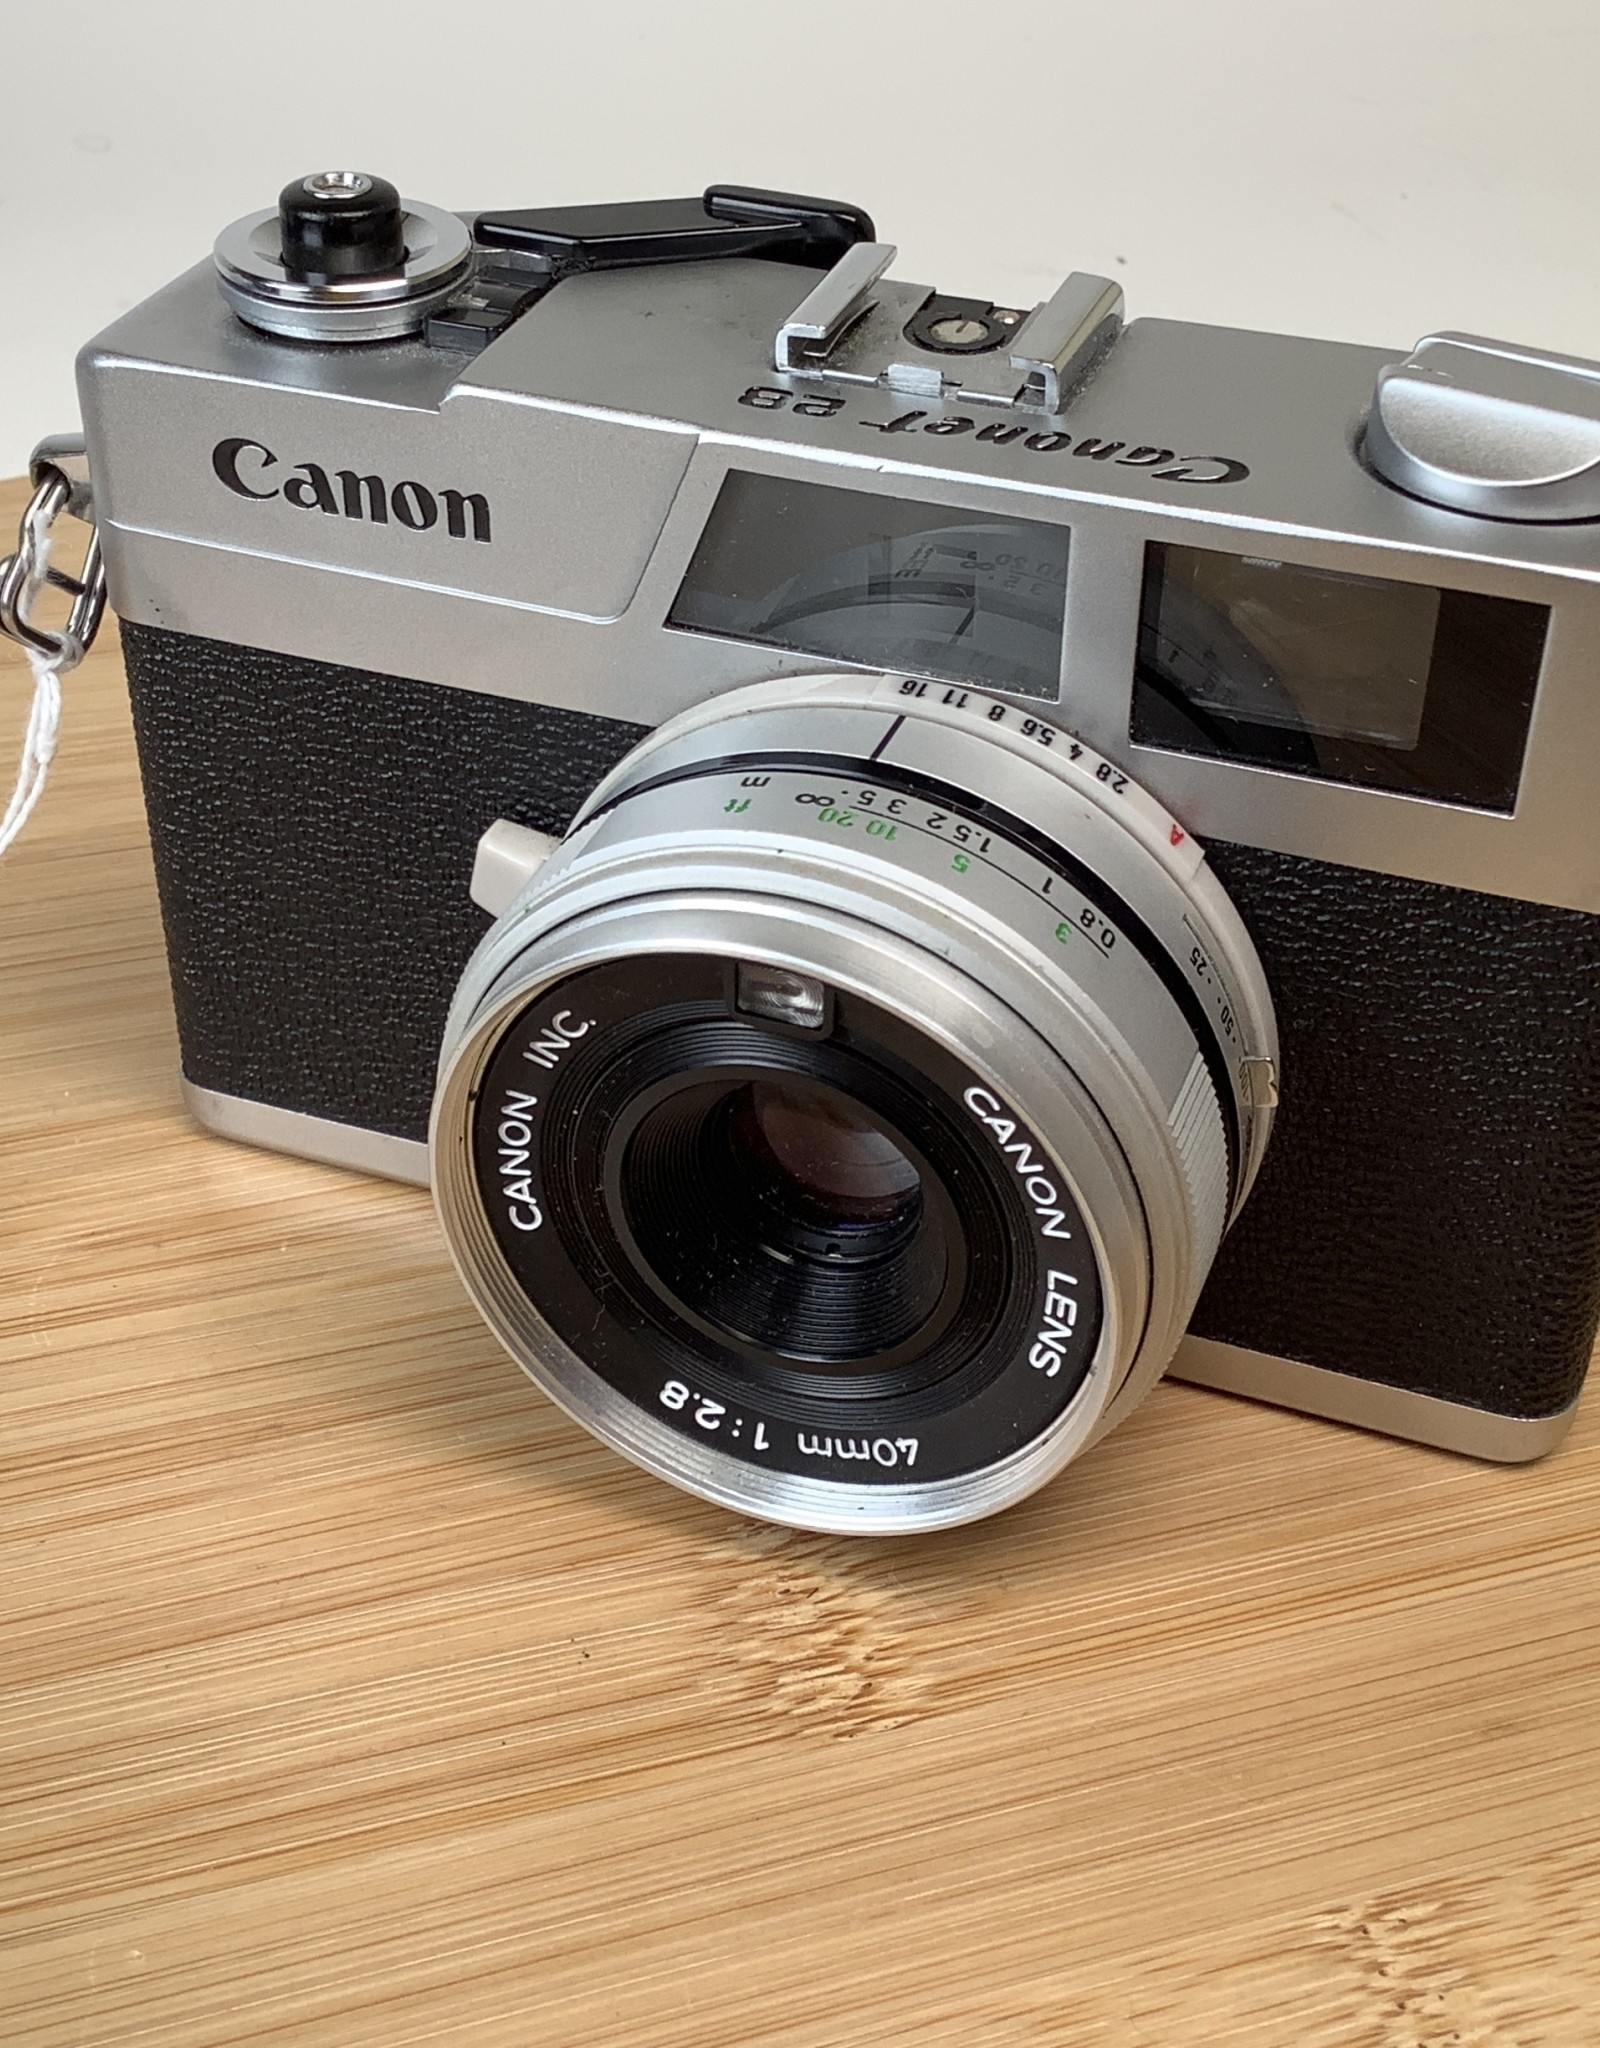 CANON Canon Canonet 28 Sold As Is For Parts Used